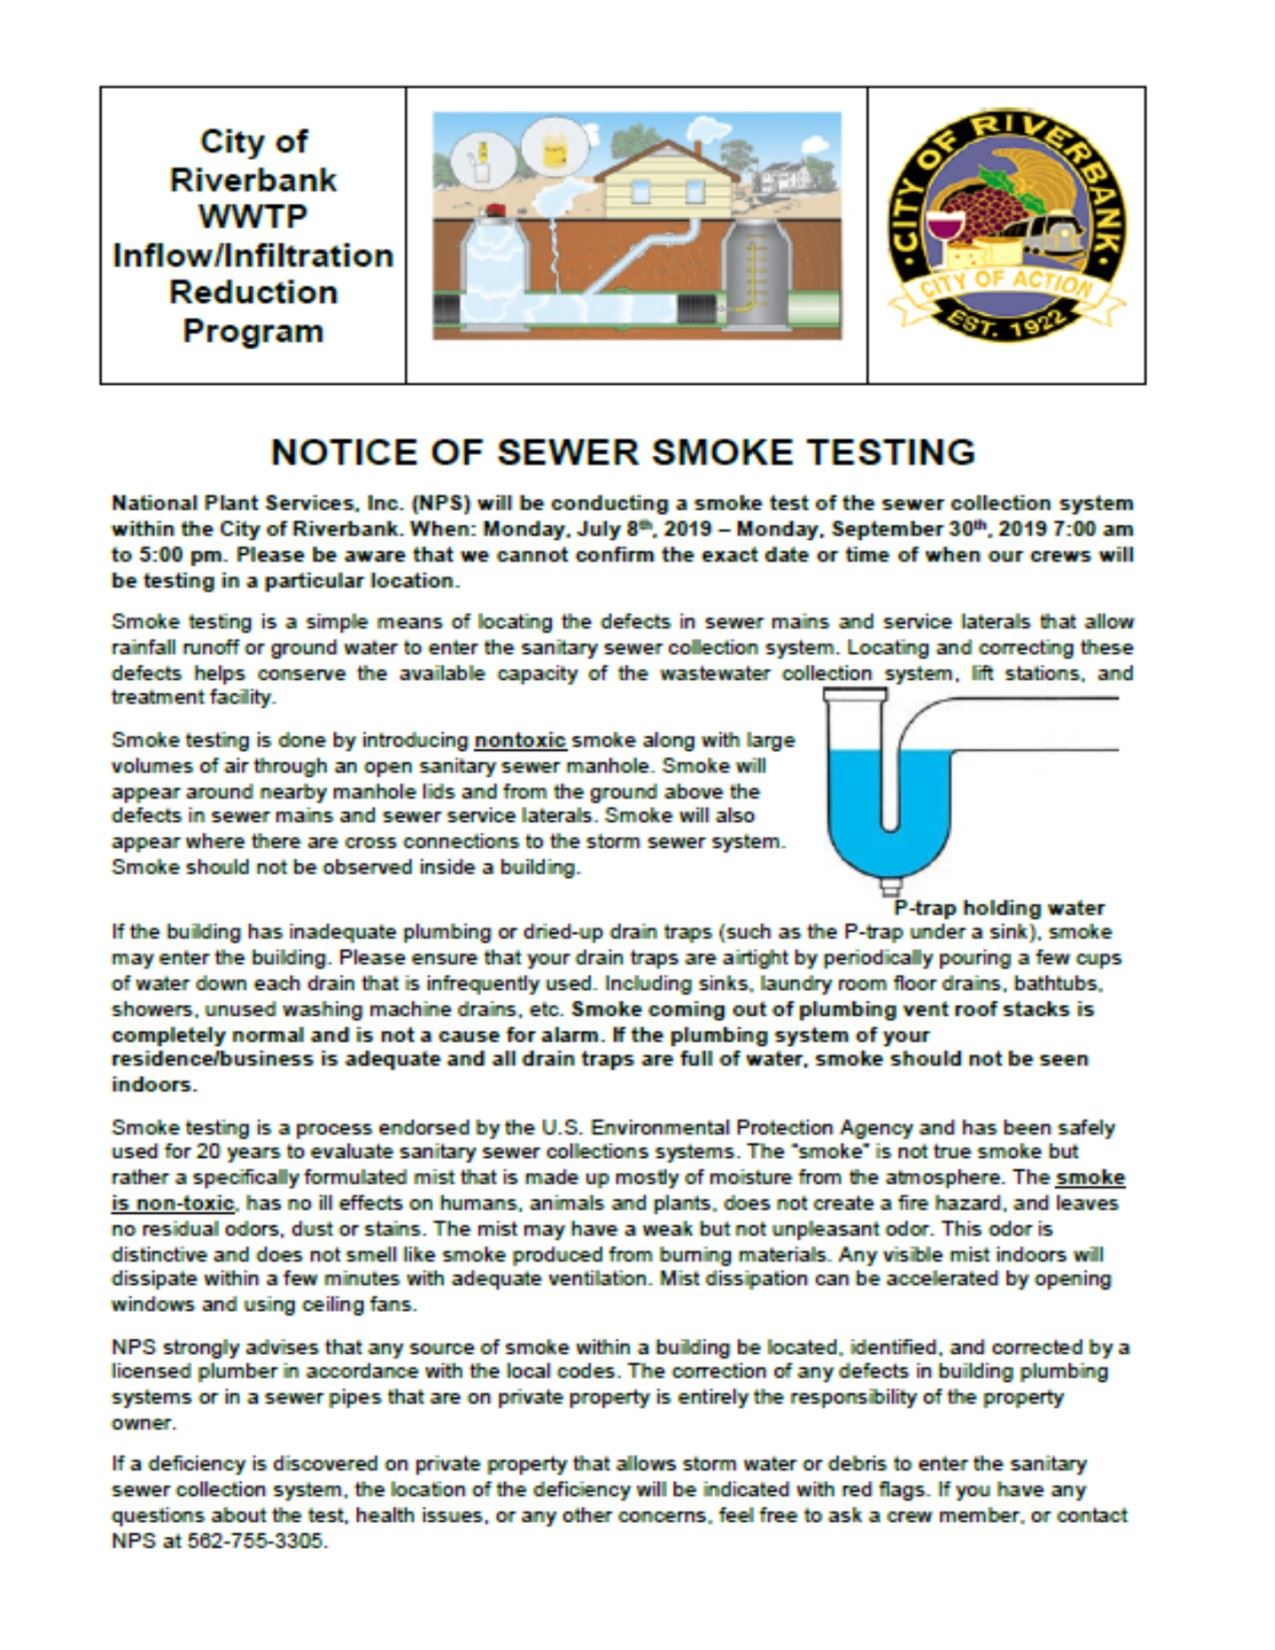 Notice of Smoke Testing